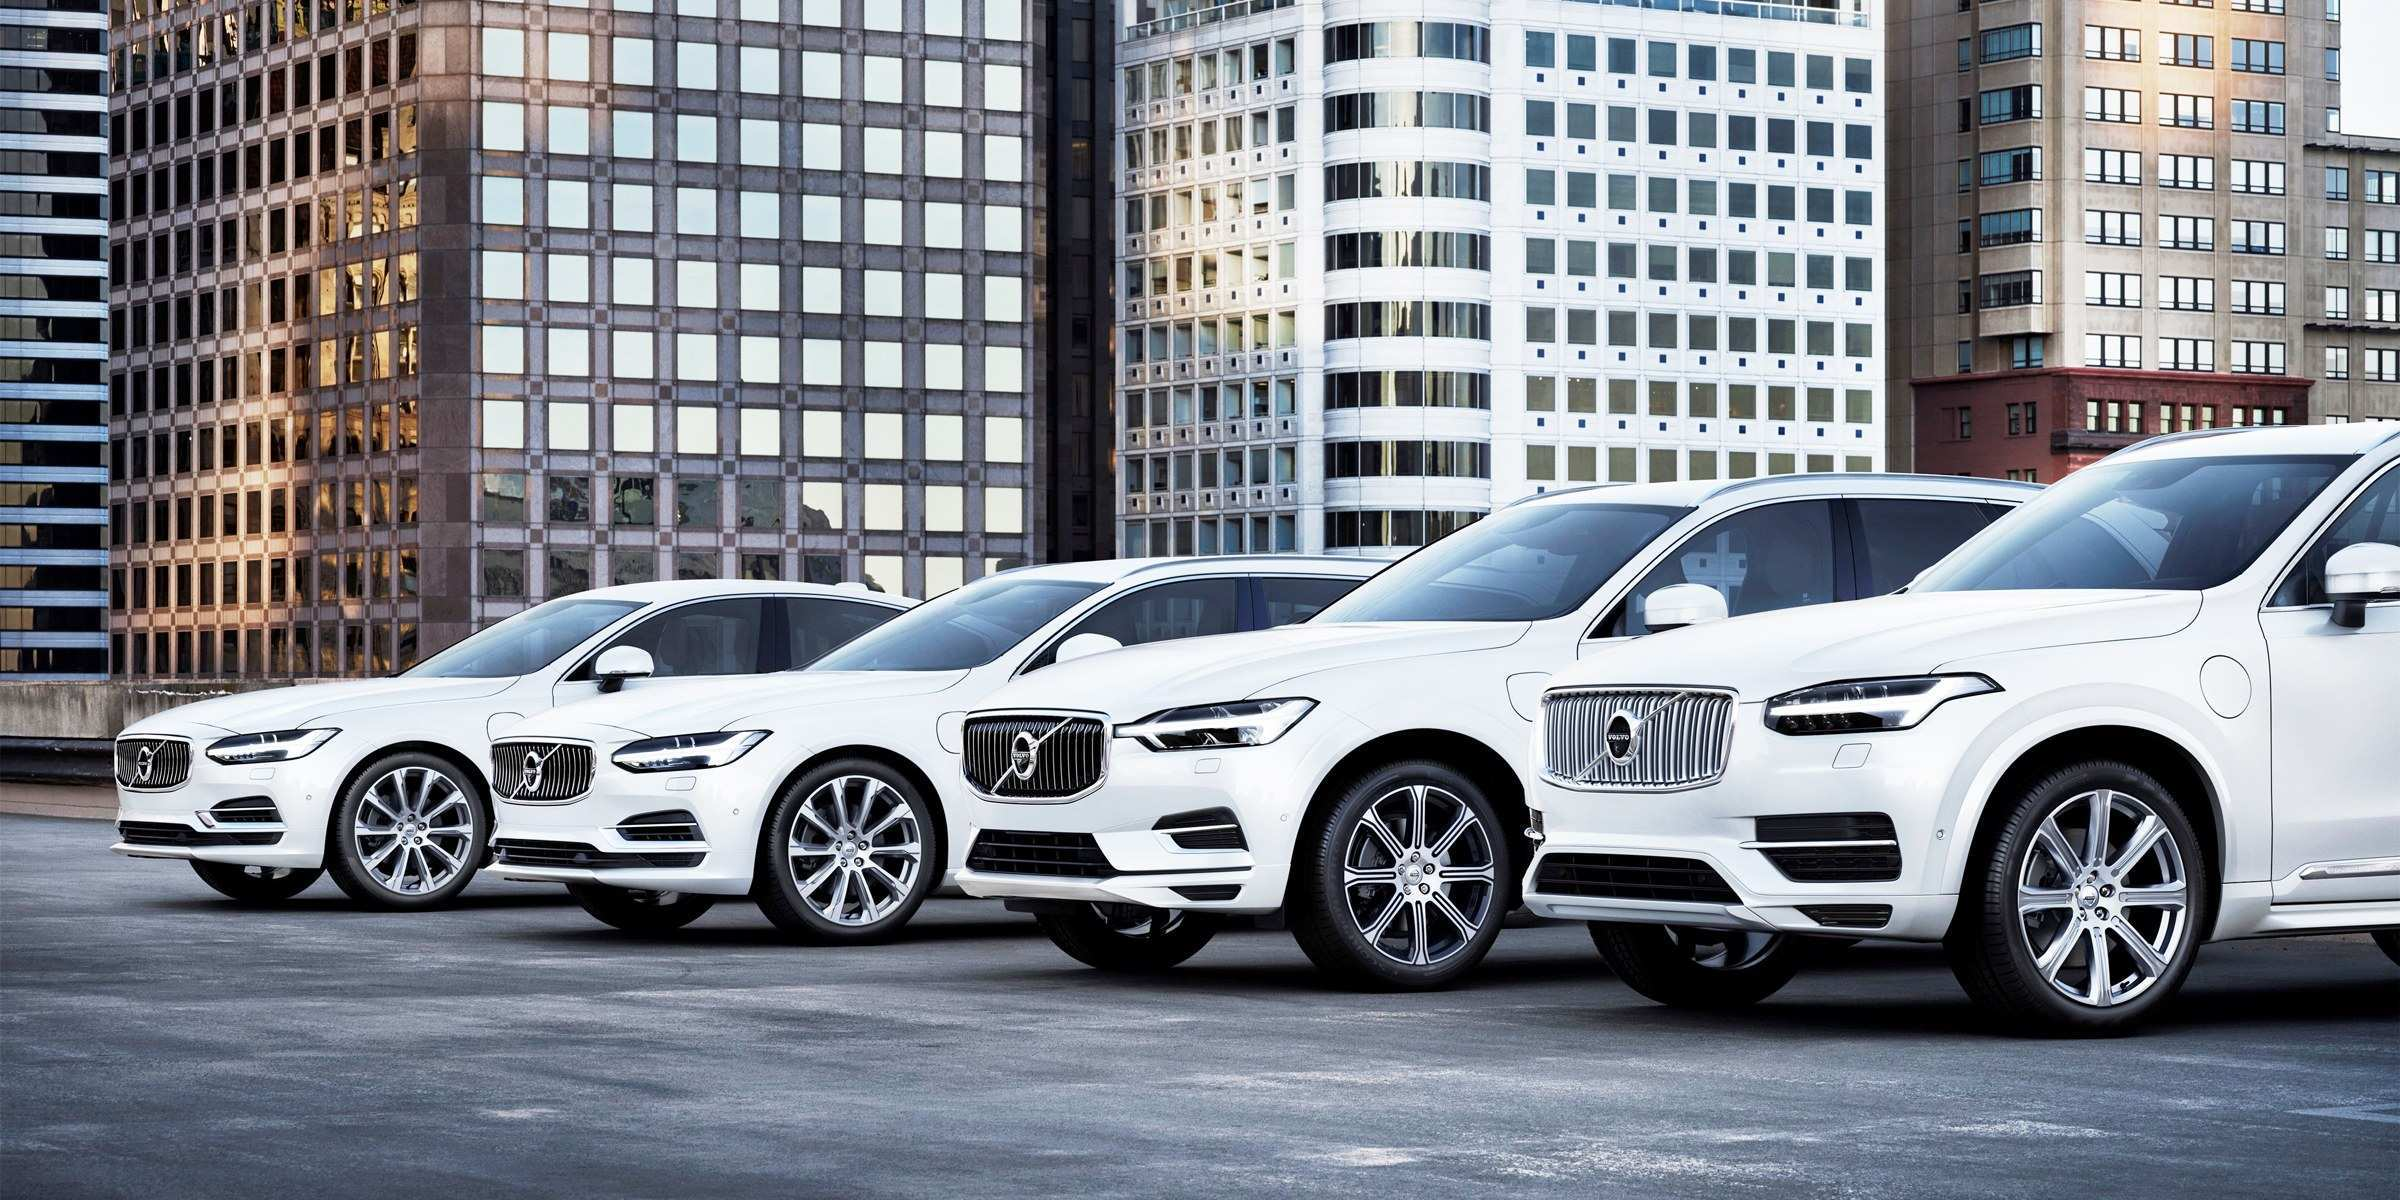 72 Concept of Volvo Going Electric By 2020 Ratings for Volvo Going Electric By 2020